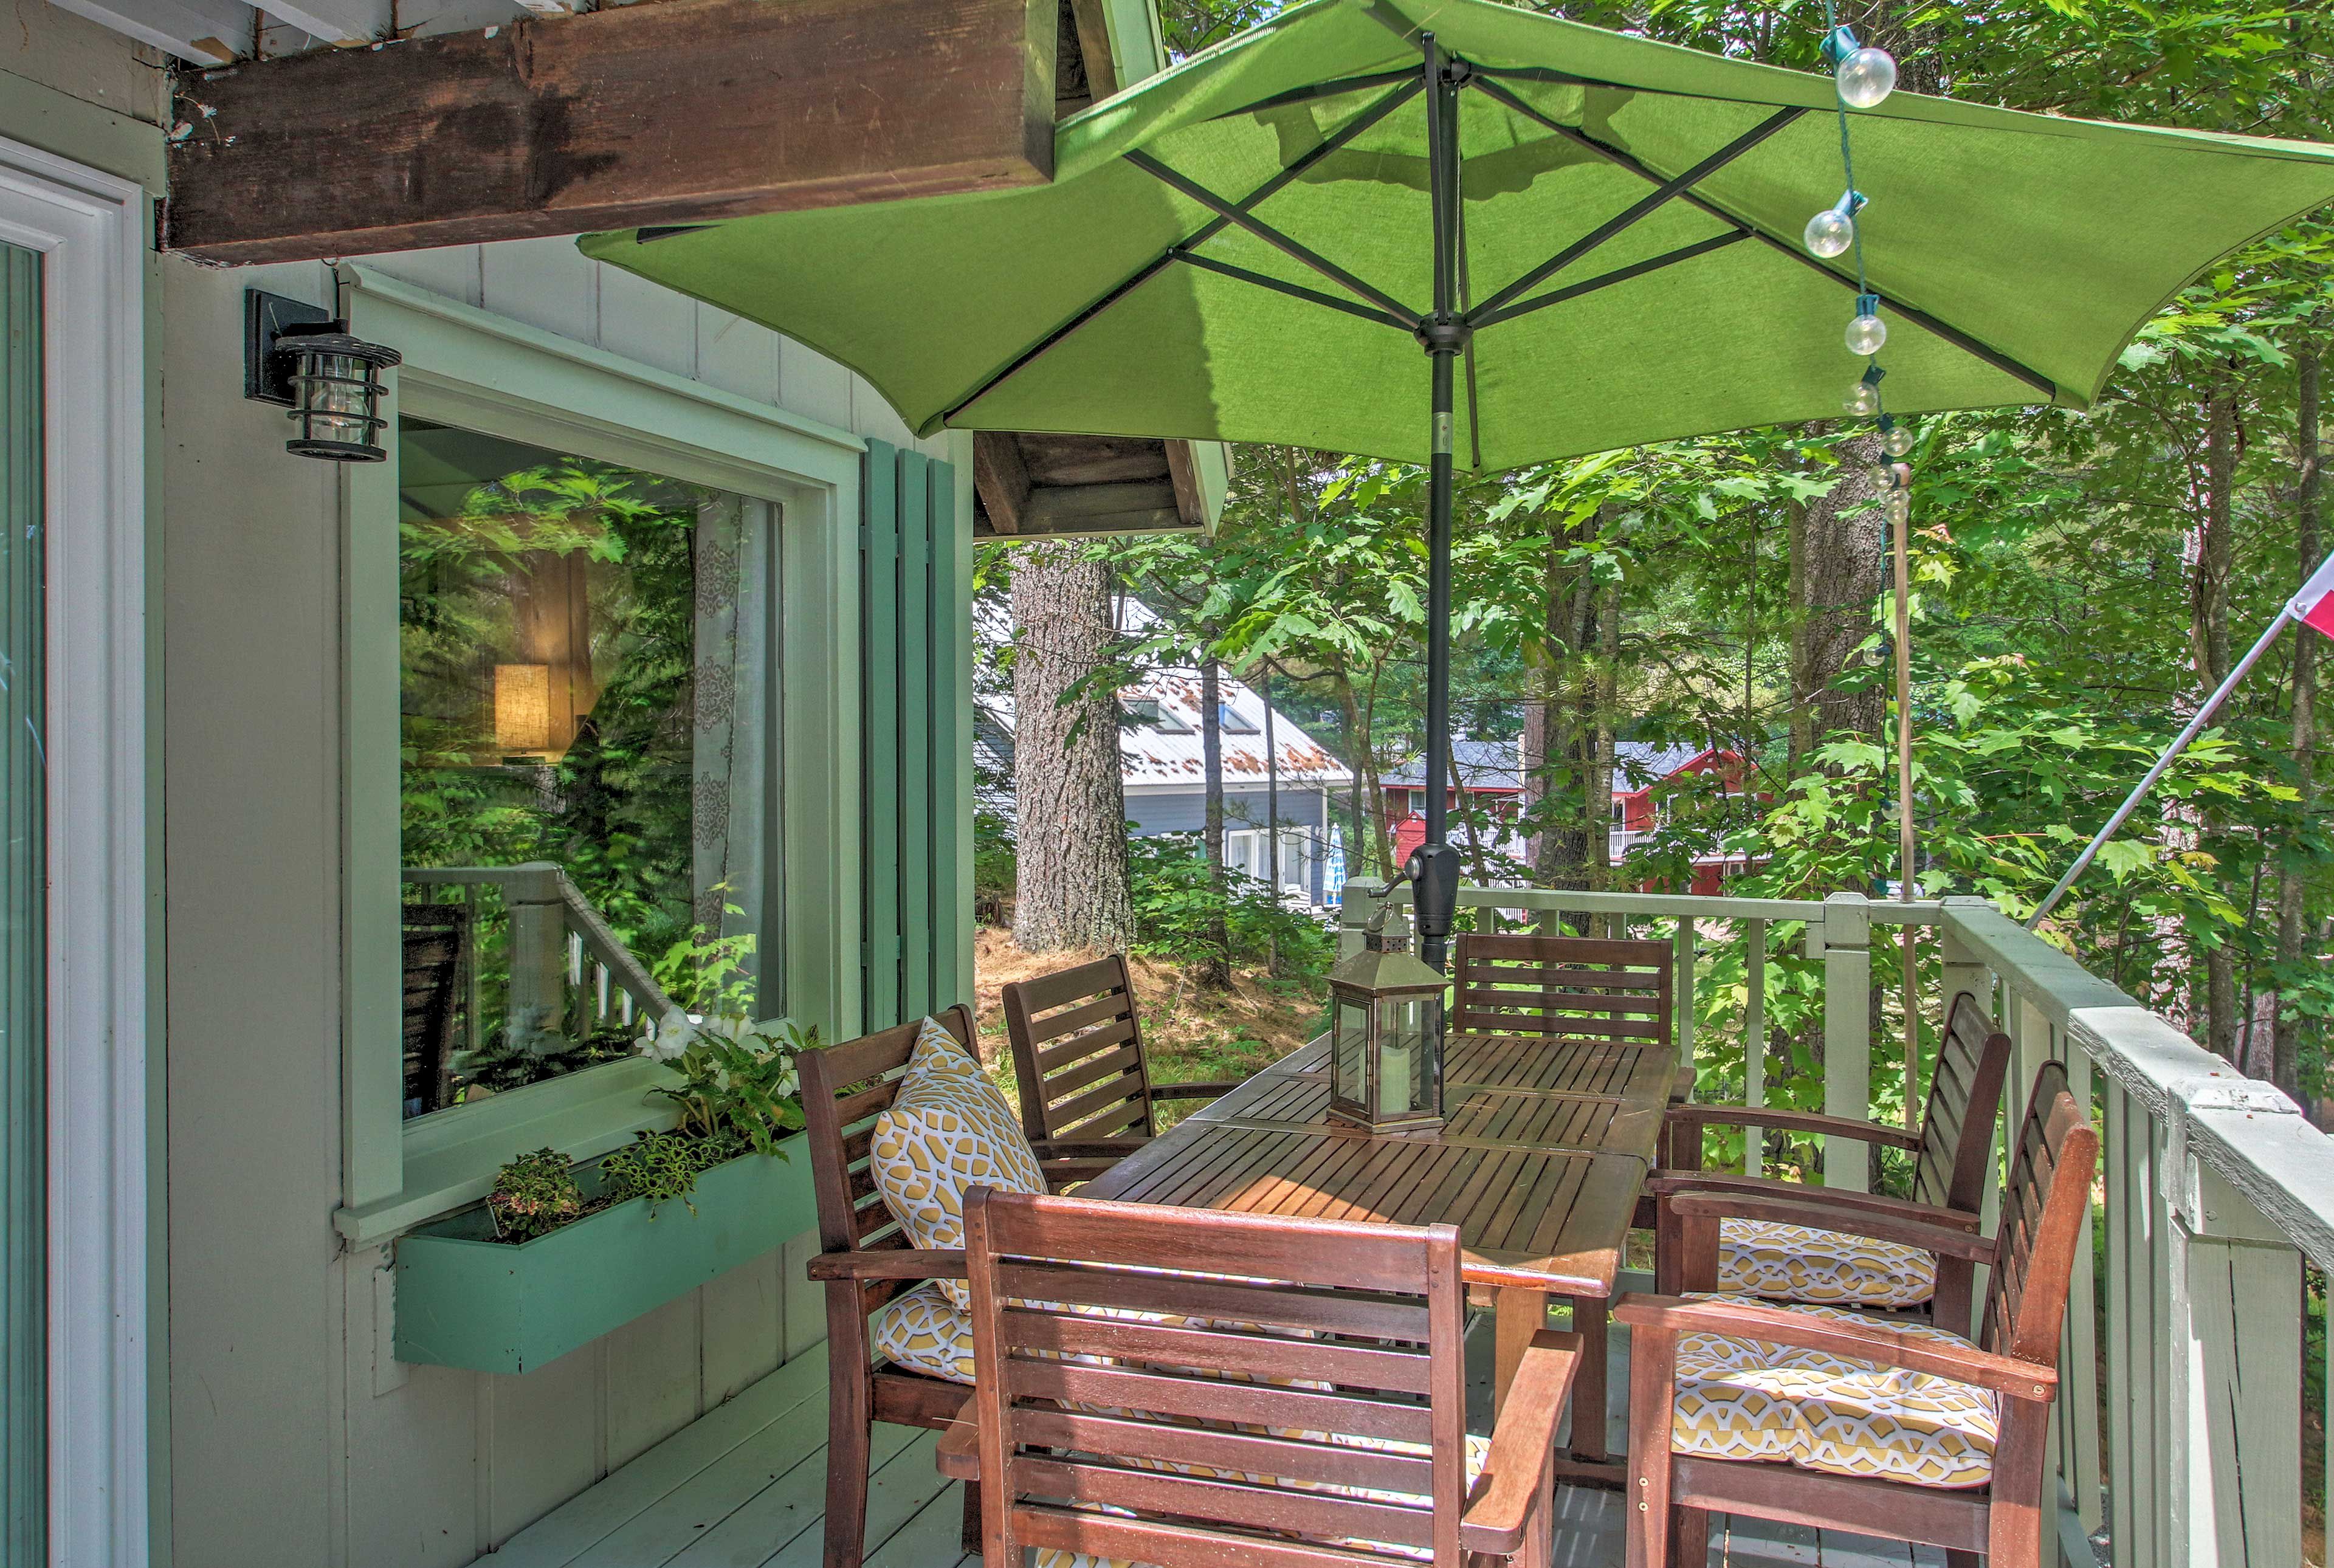 Sit in the shade and enjoy a barbecued meal together.